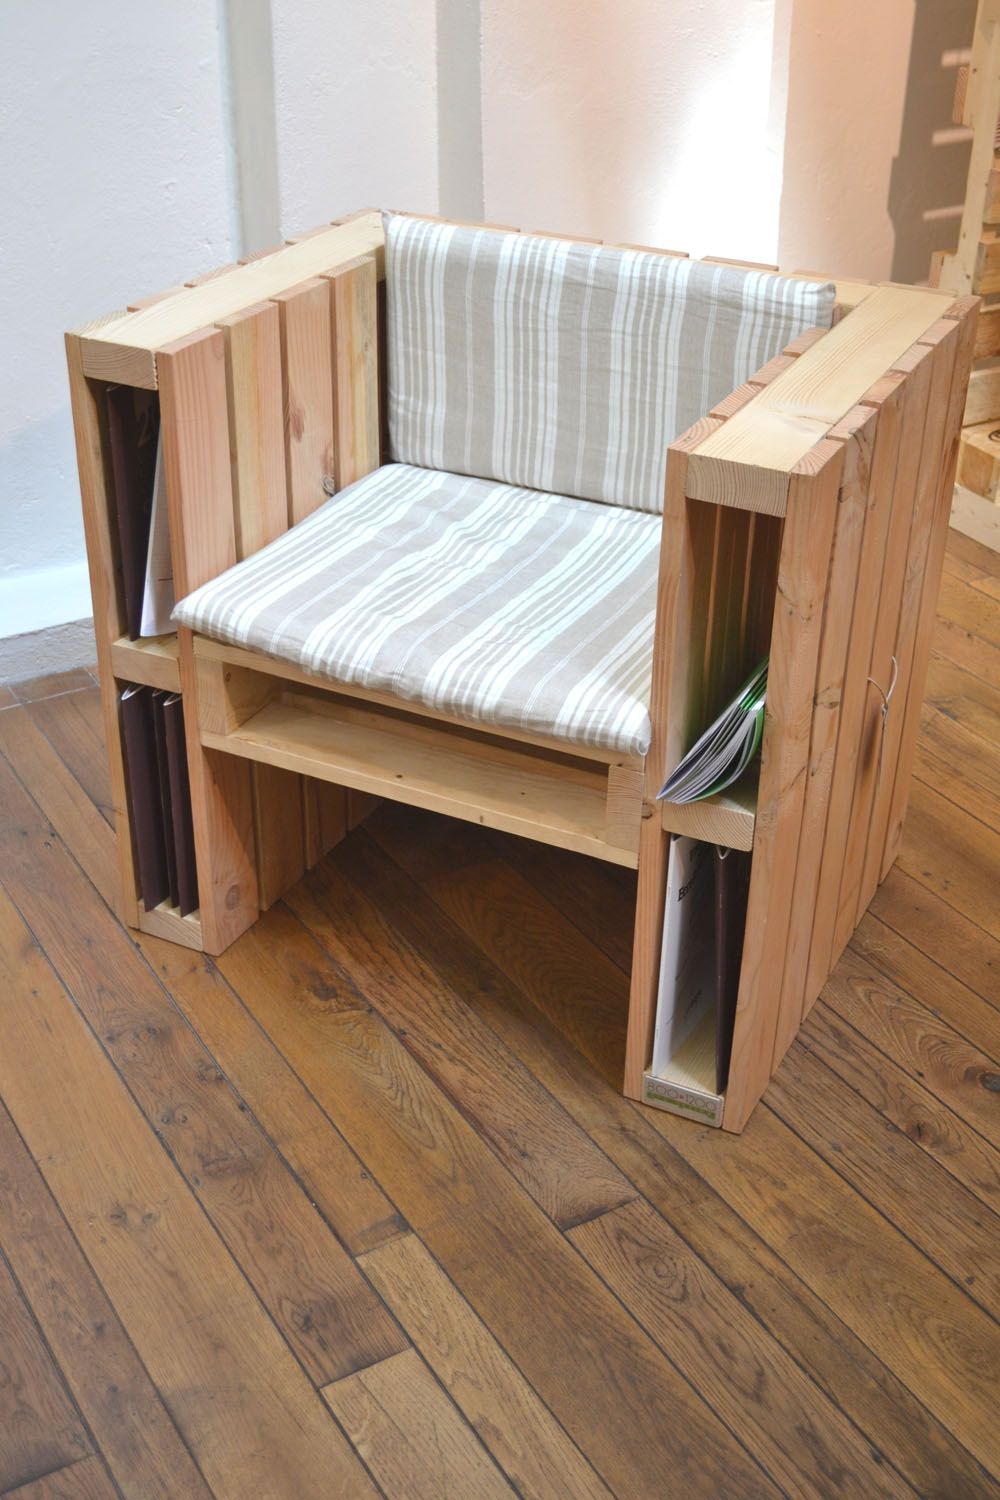 I ♥ That This Reclaimed Pallet Project Allows You to Store Your